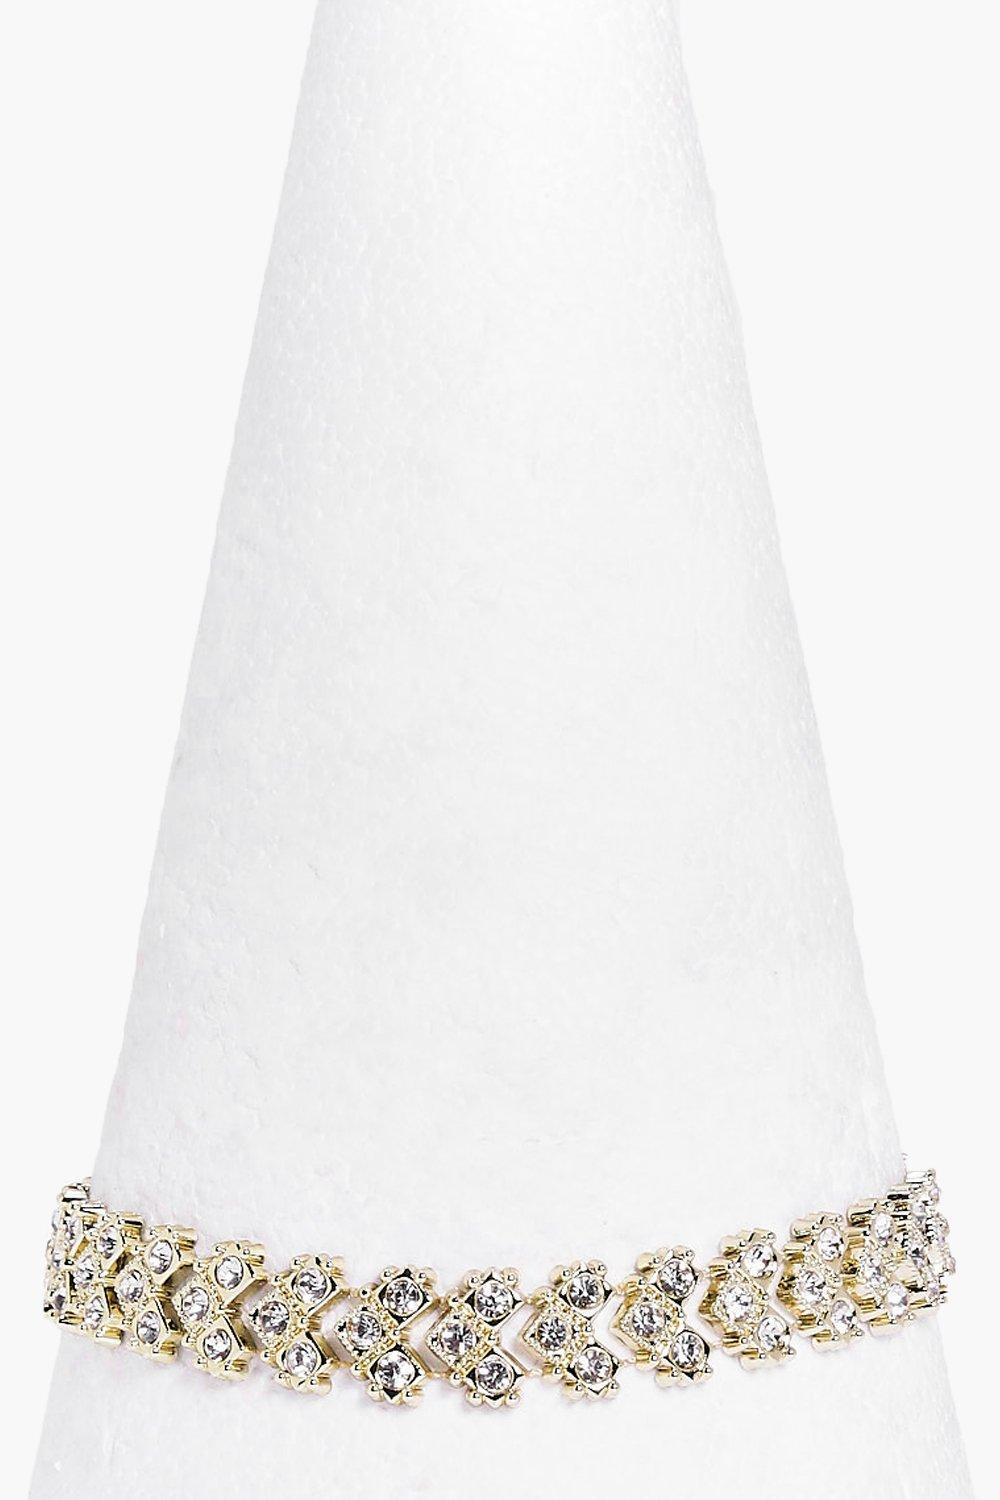 Boohoo Chevron Diamante Embellished Choker in Gold (Metallic)